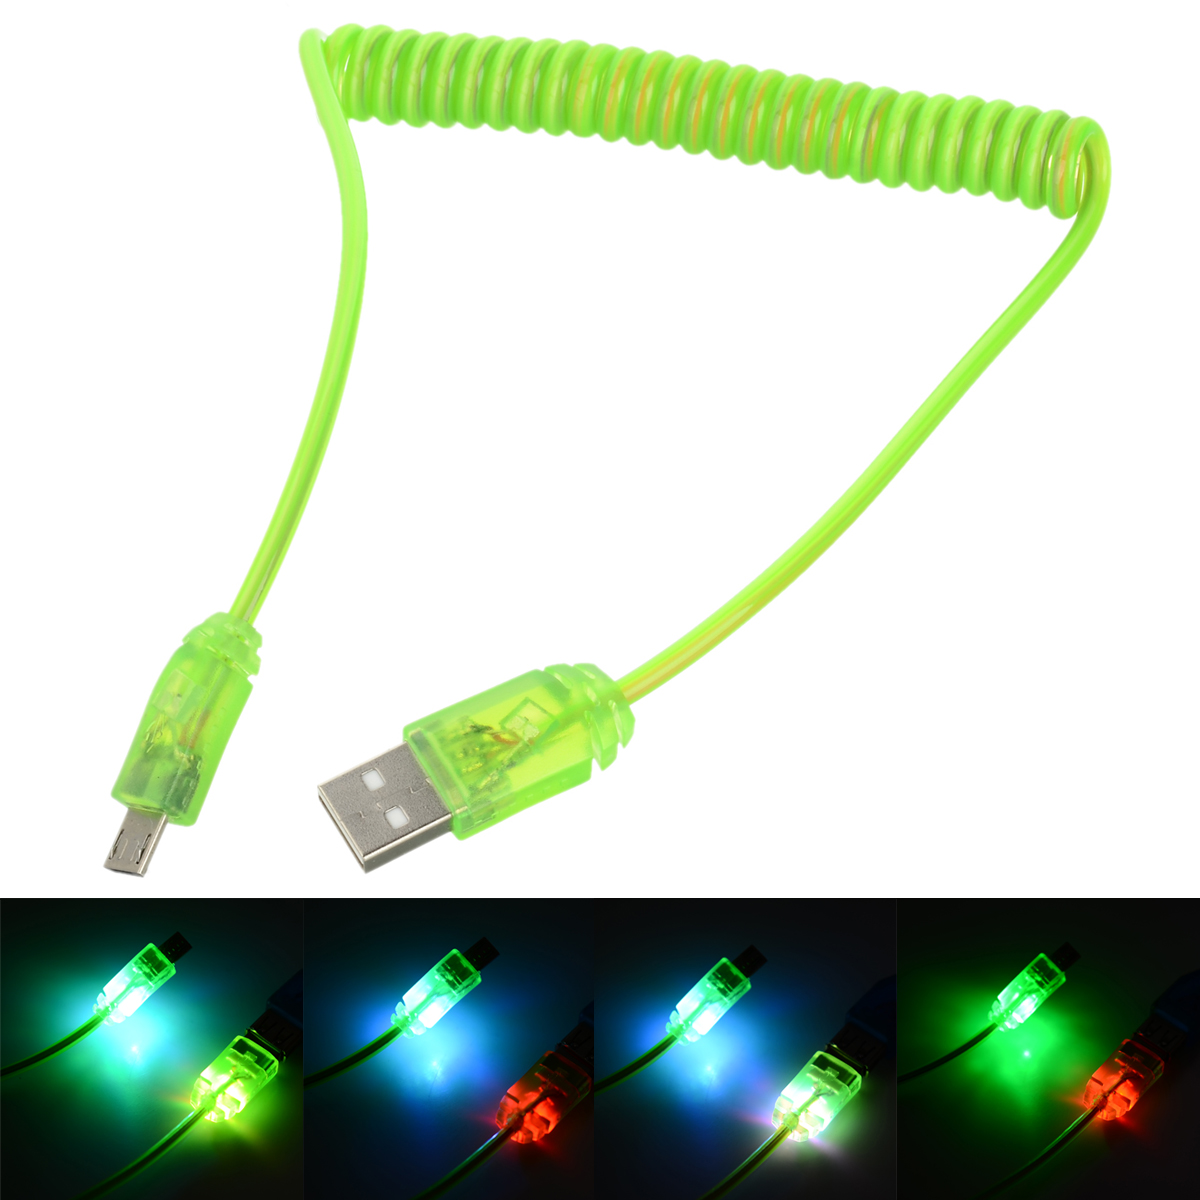 Lighting USB to Micro USB Spring Charging / Data Cable - Green (40cm)